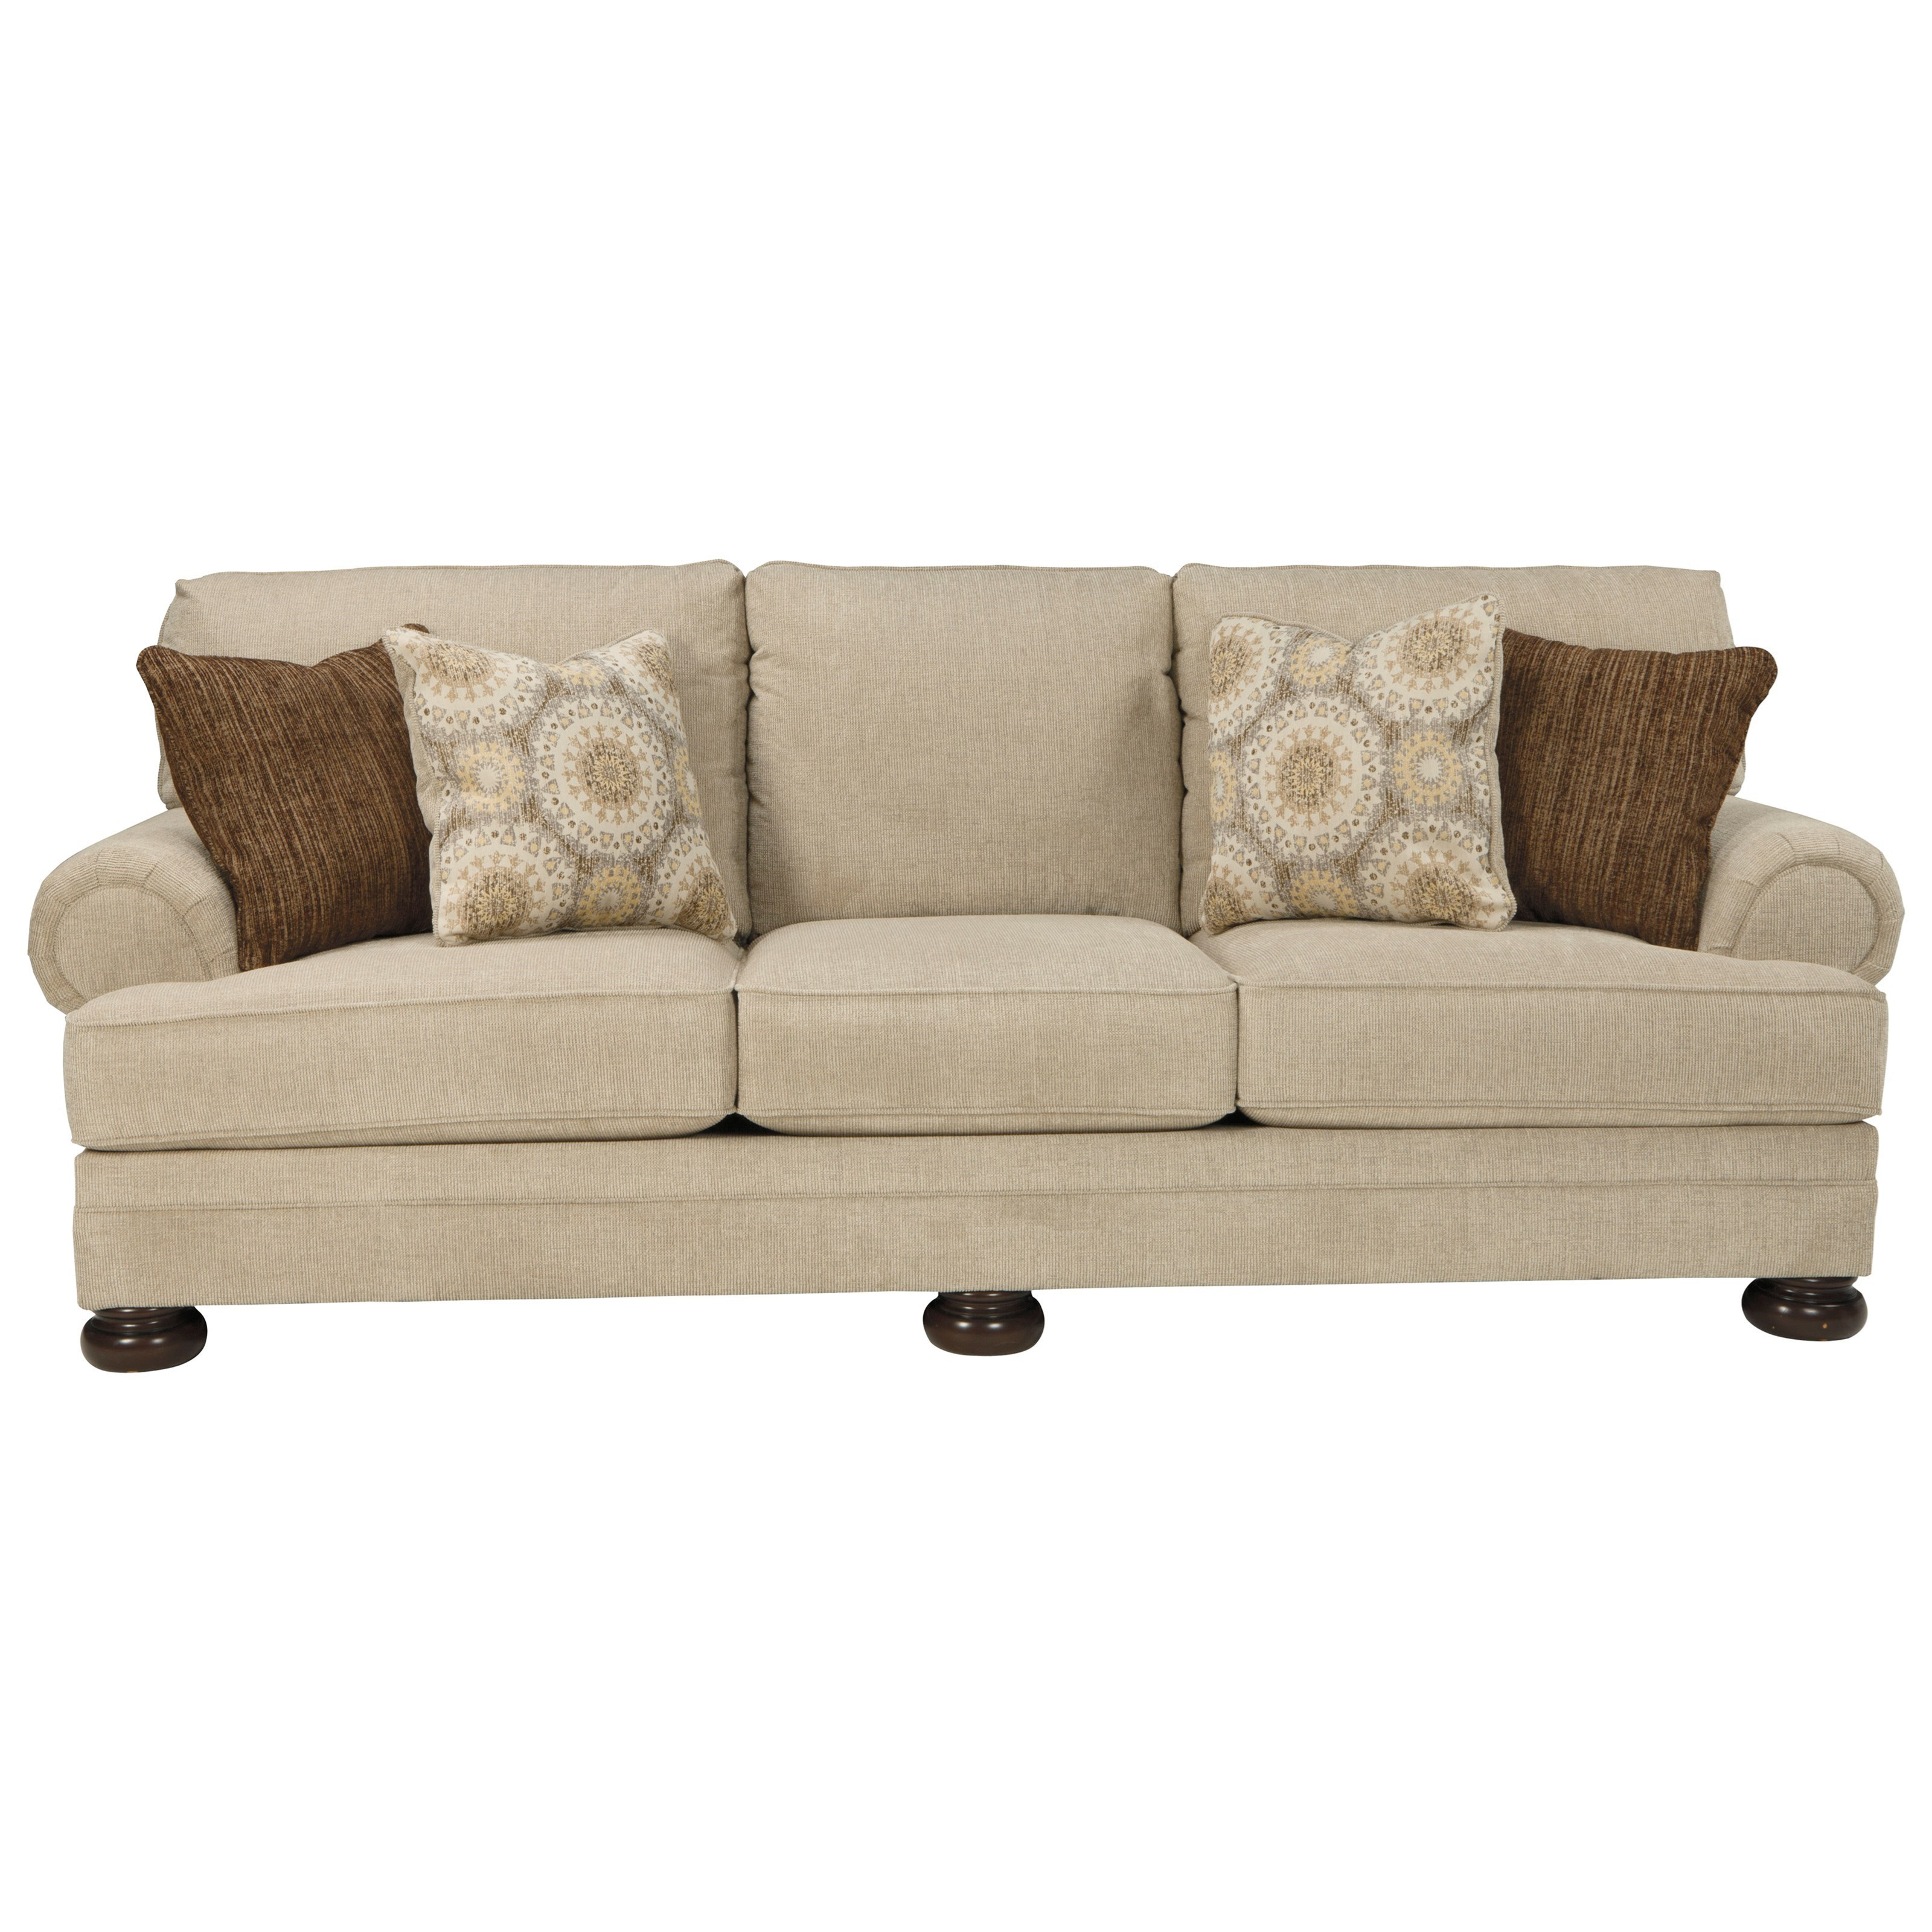 english roll arm chair and a half covers for hire nz benchcraft sofas breville faux leather sofa